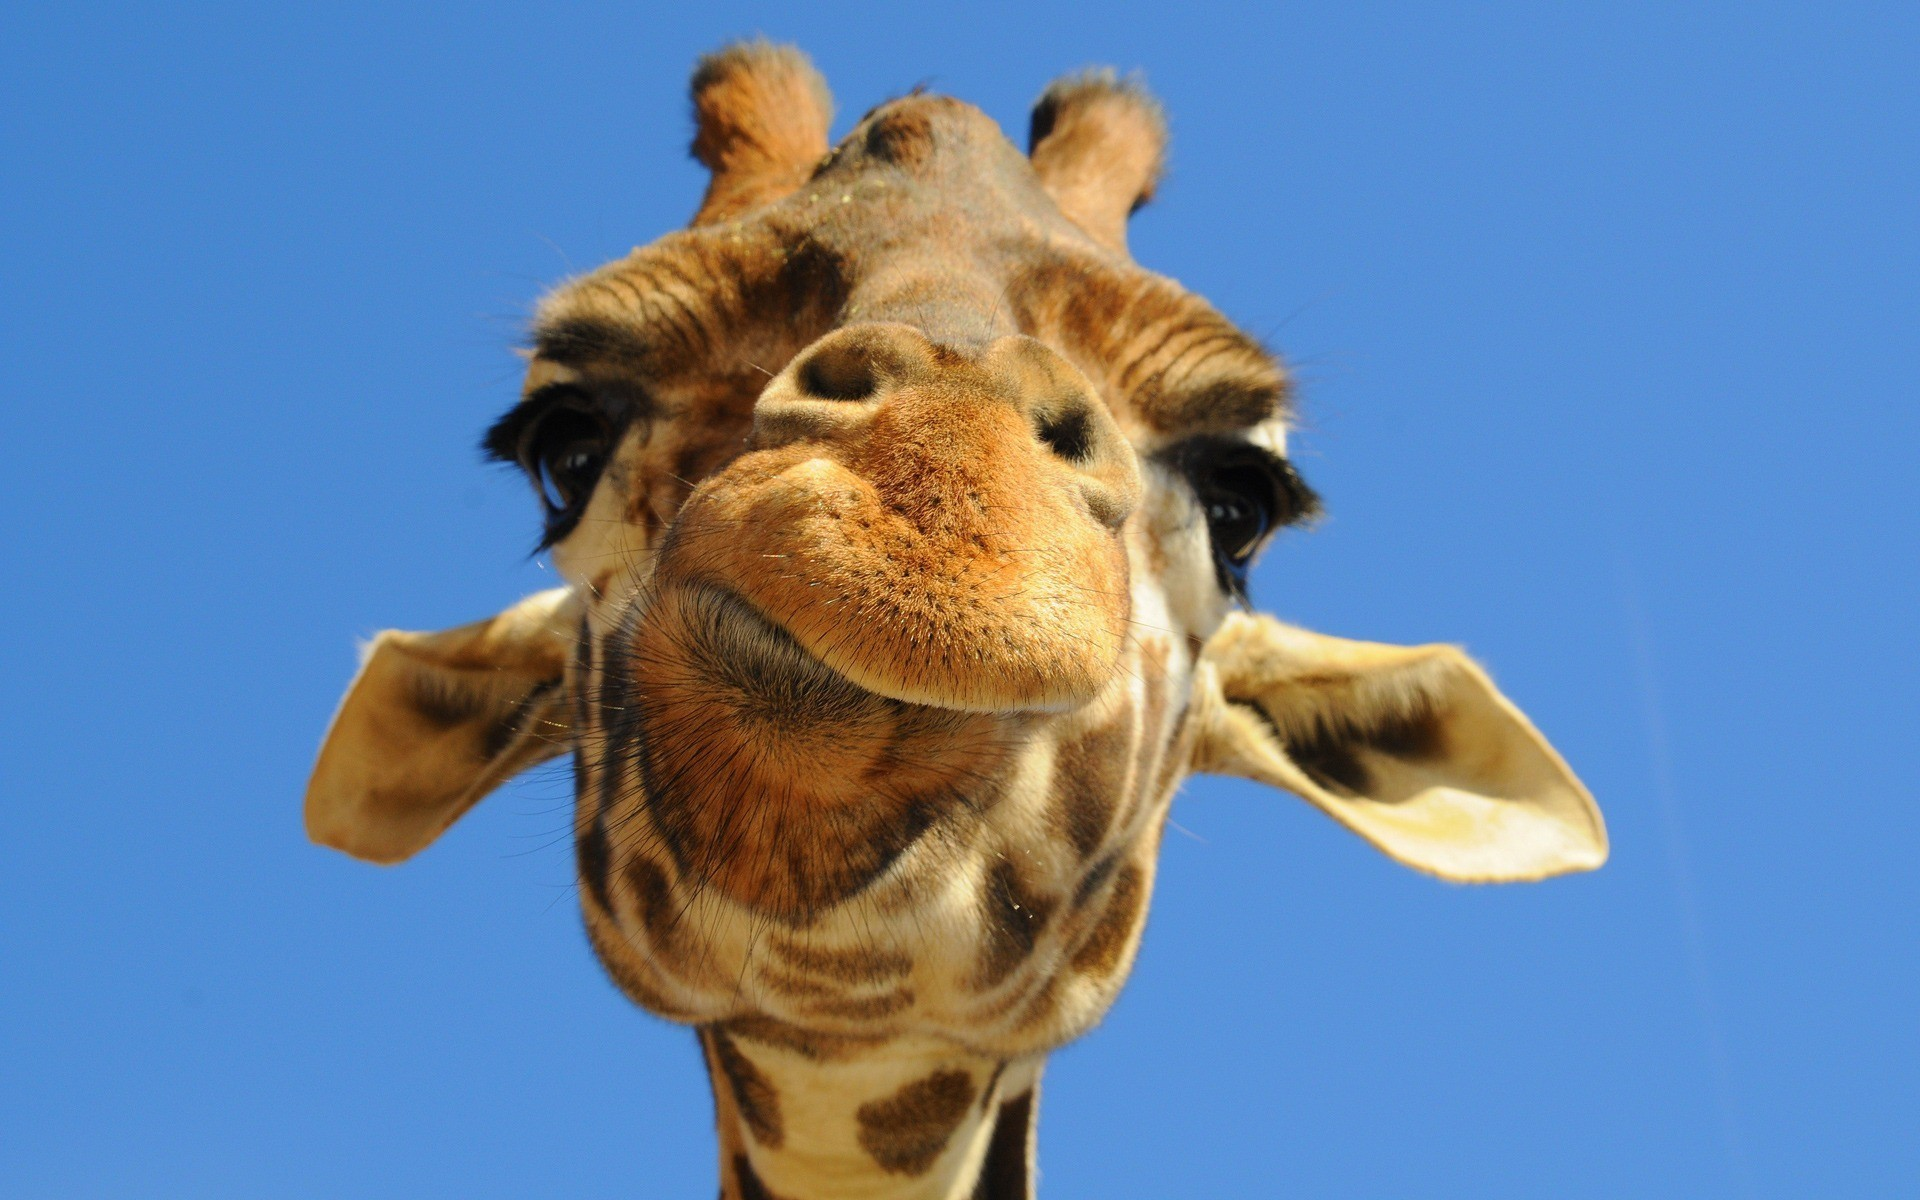 Shows the derpy head of a giraffe